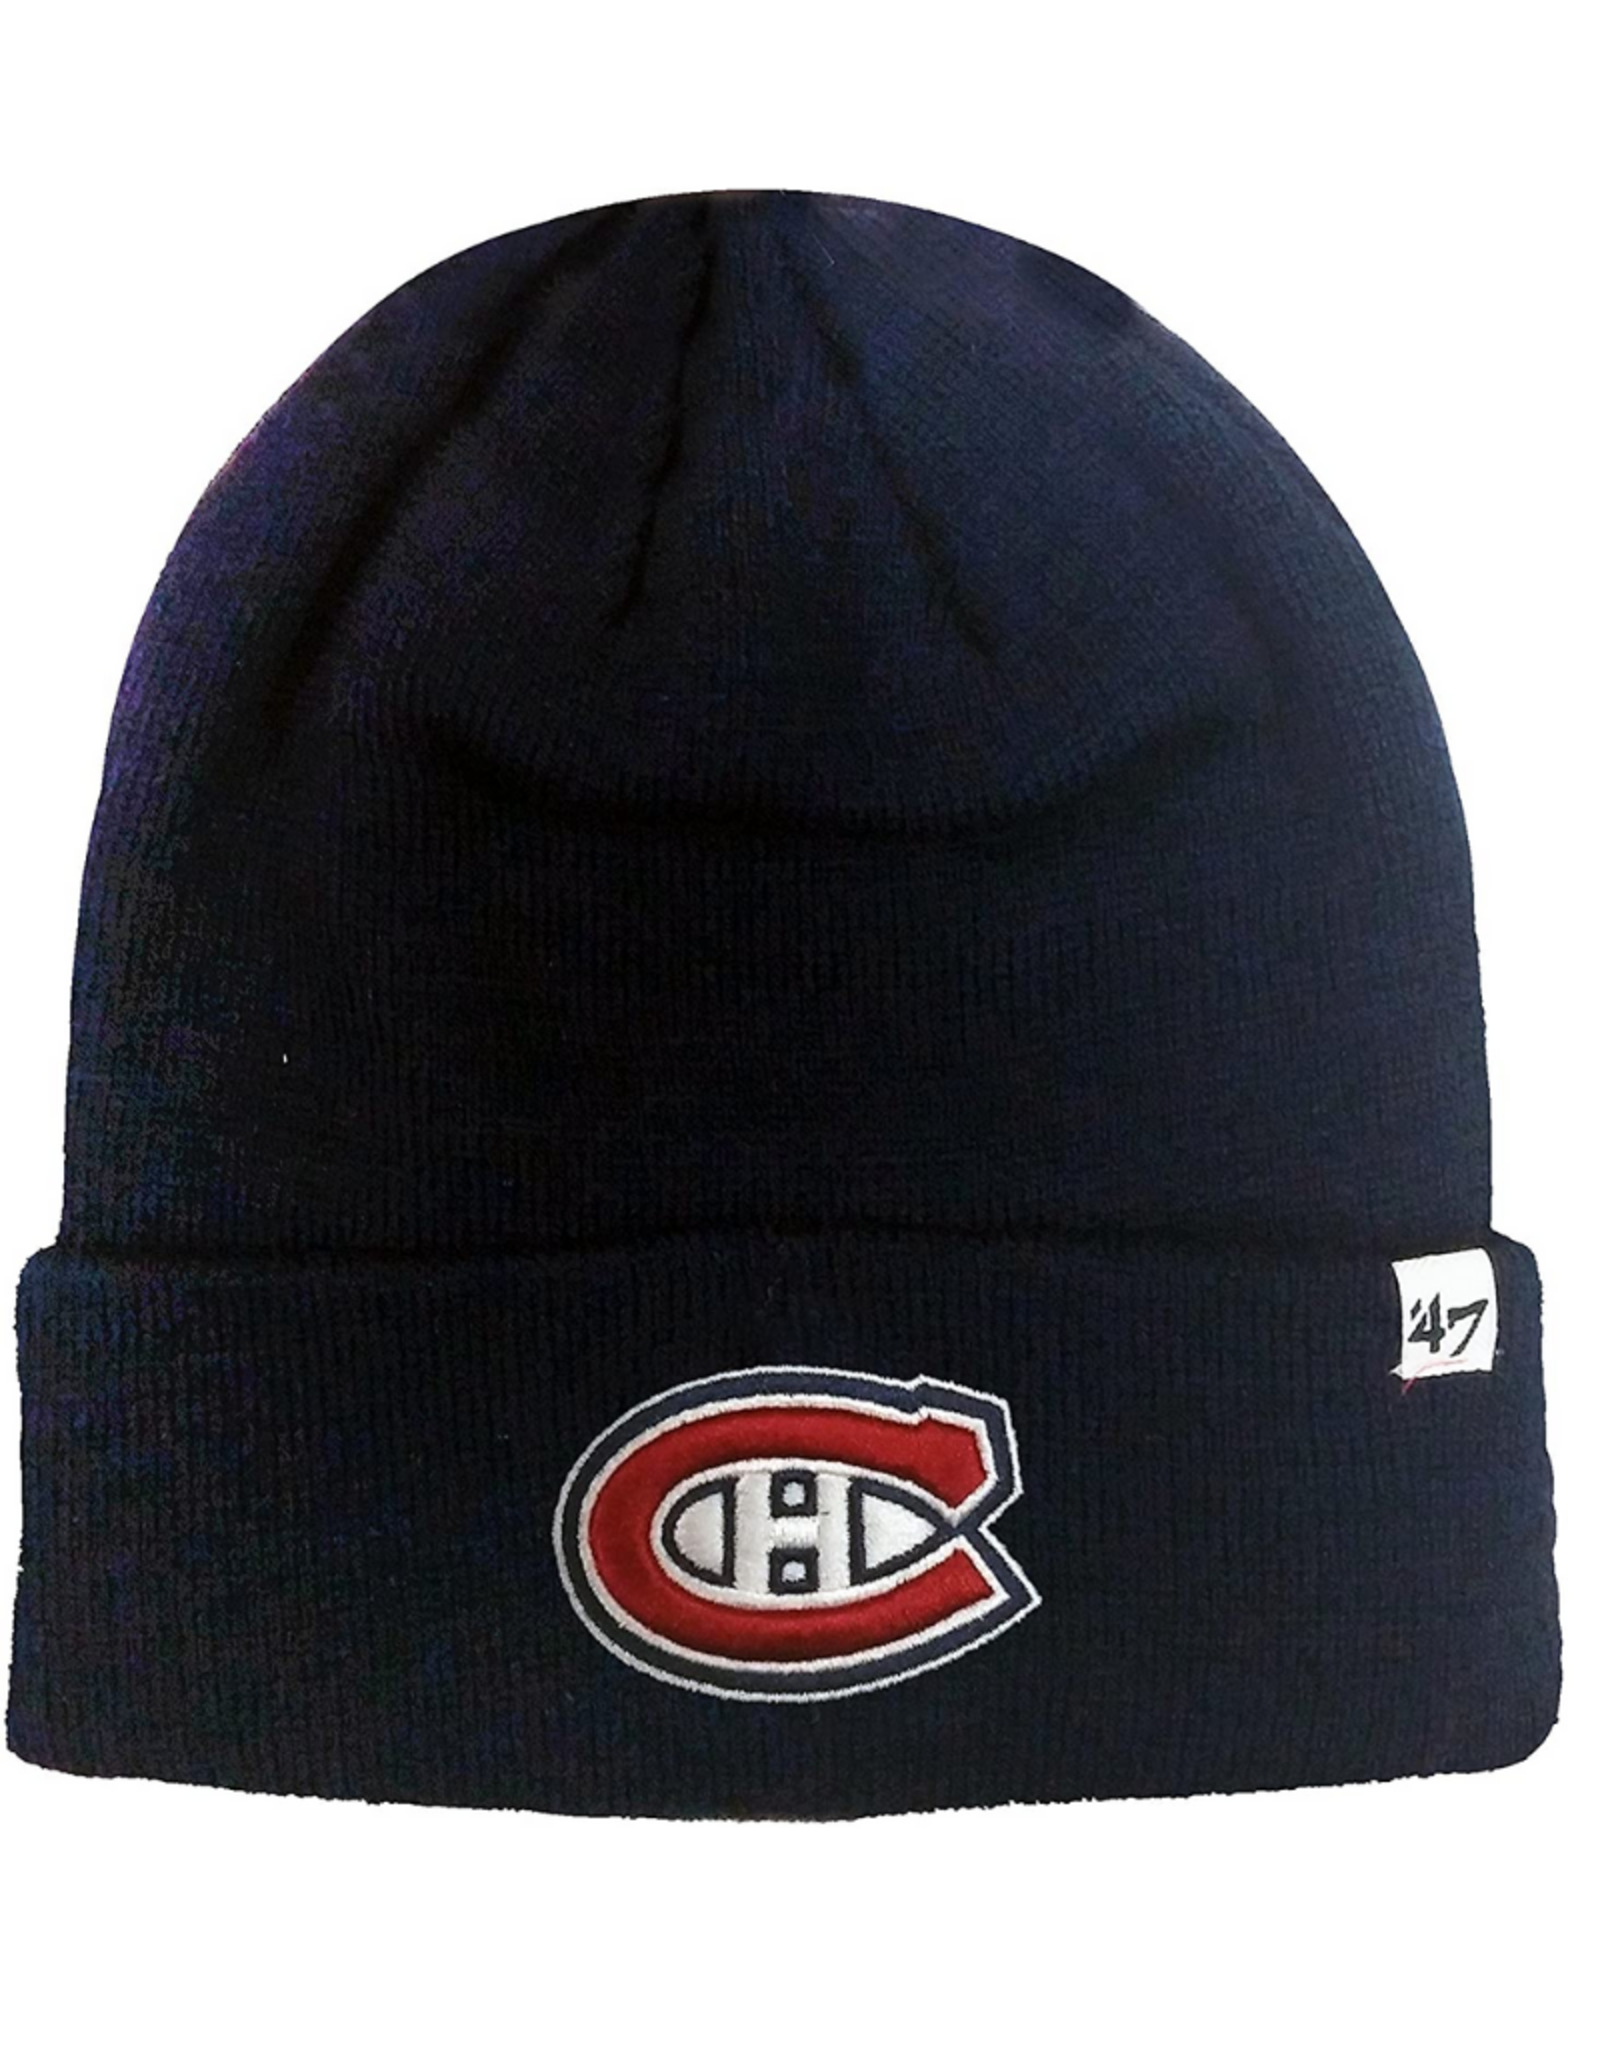 '47 Adult Raised Cuff Knit Montreal Canadiens Navy